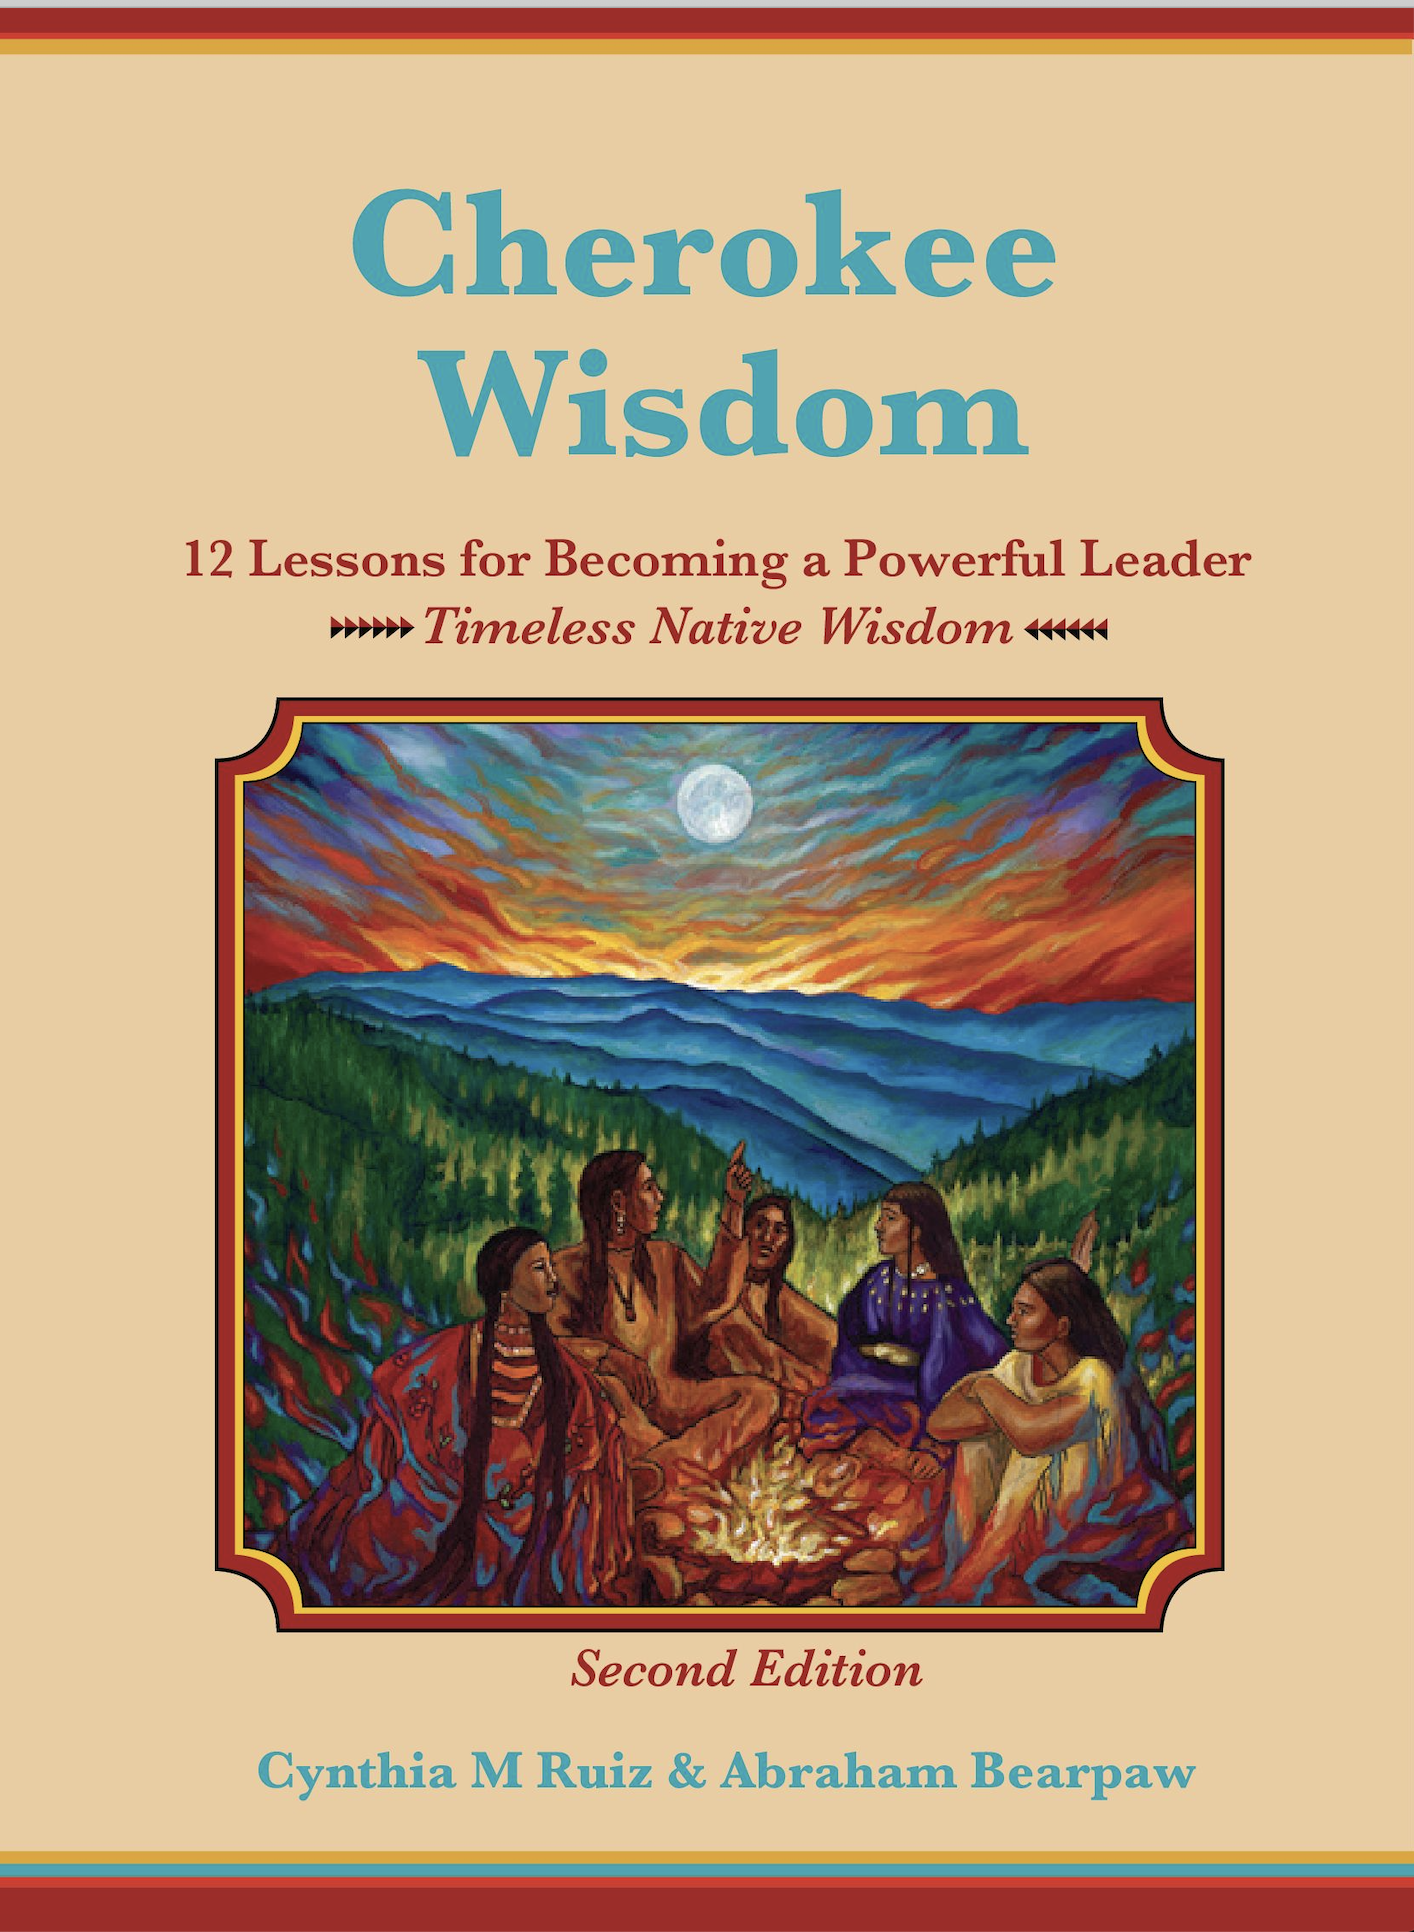 Cherokee Wisdom 2nd edition now live on Amazon.com